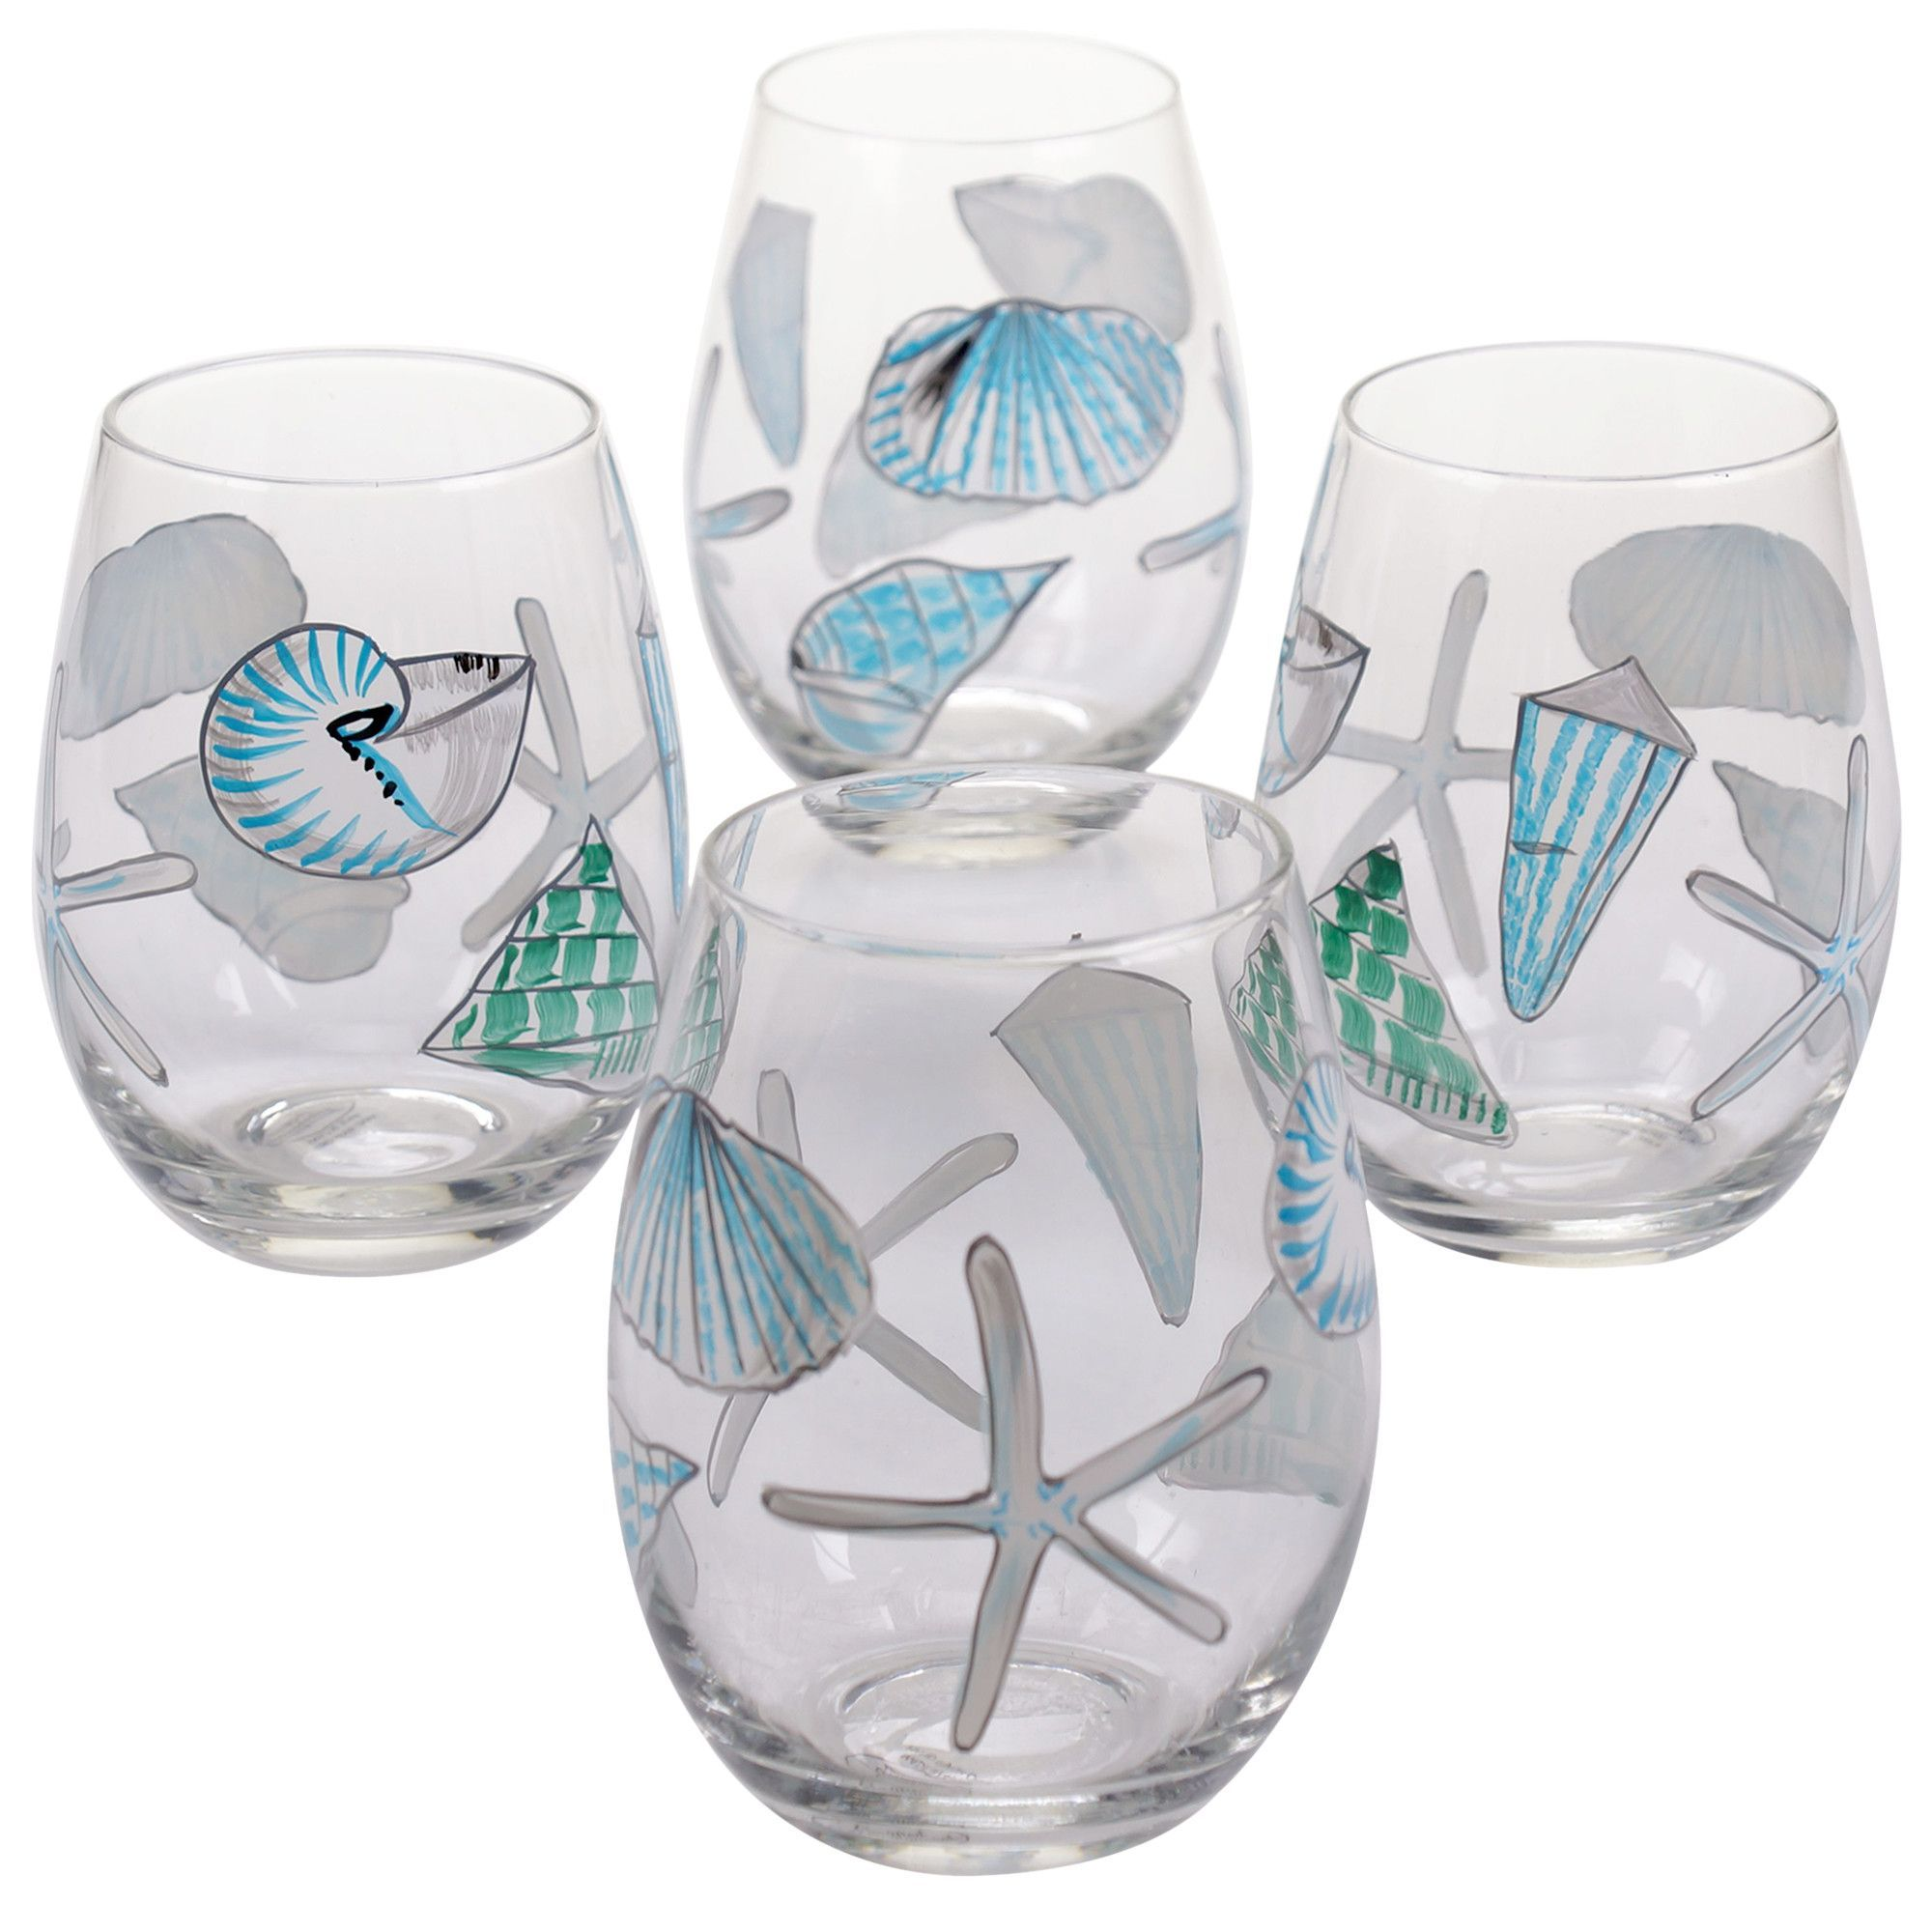 Where To Find Wine Glasses Sea Finds 22 Oz Stemless Wine Glass Future Mrs